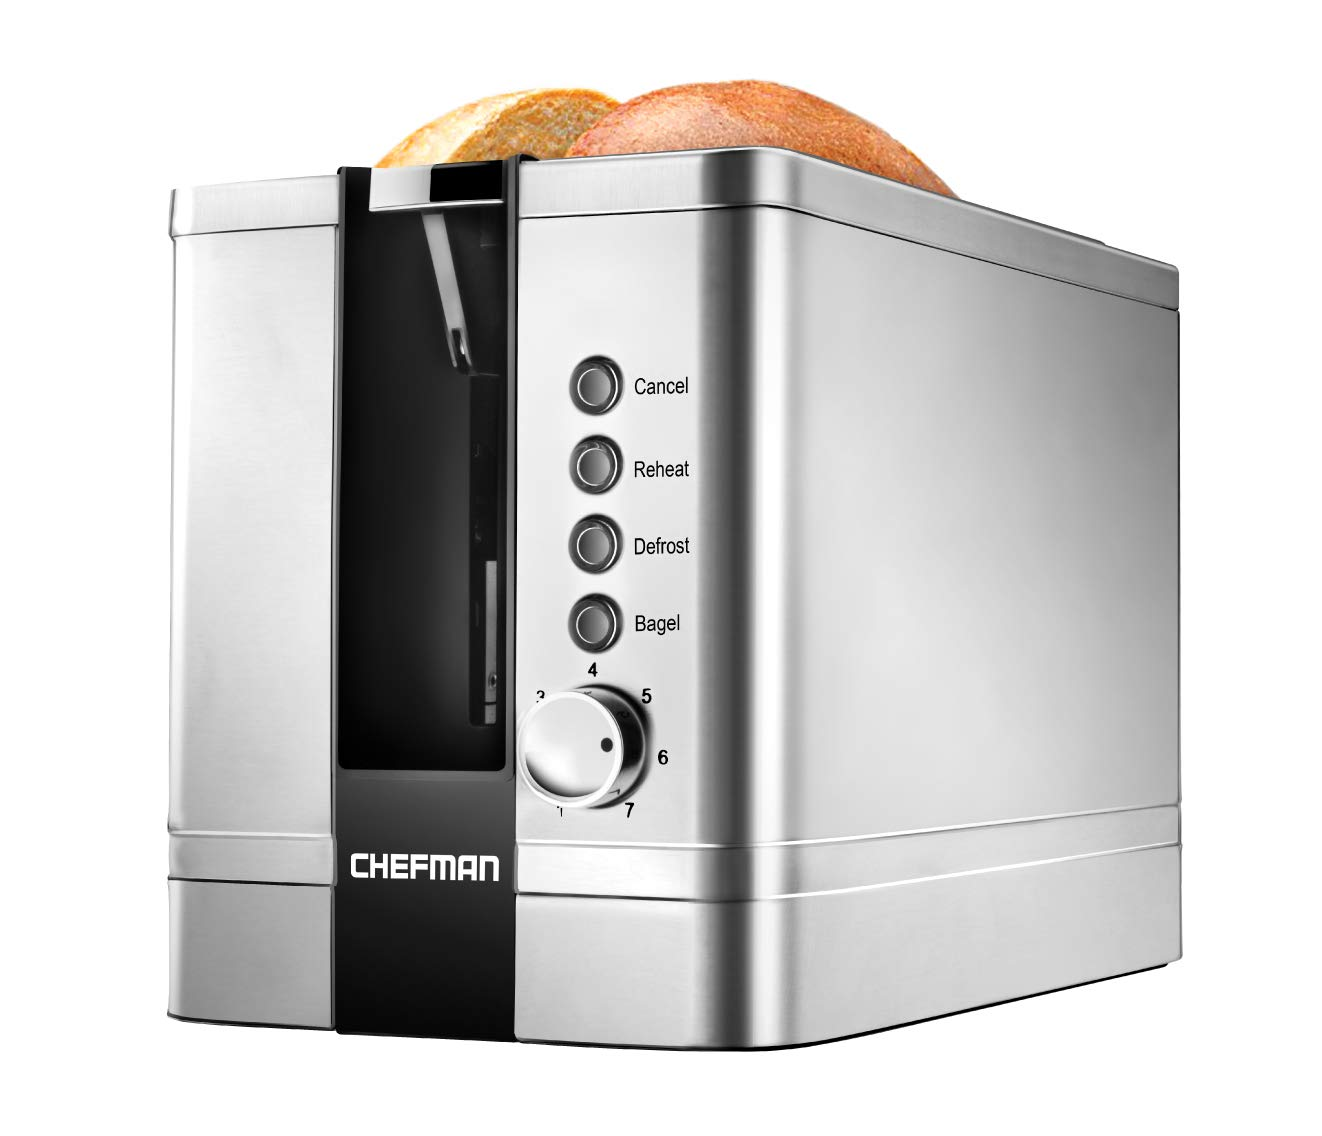 Chefman 2-Slice Pop-Up Stainless Steel Toaster w/ 7 Shade Settings Extra Wide Slots for Toasting Bagels, Defrost/Reheat/Cancel Functions, Removable Crumb Tray, 850W, 120V, Silver